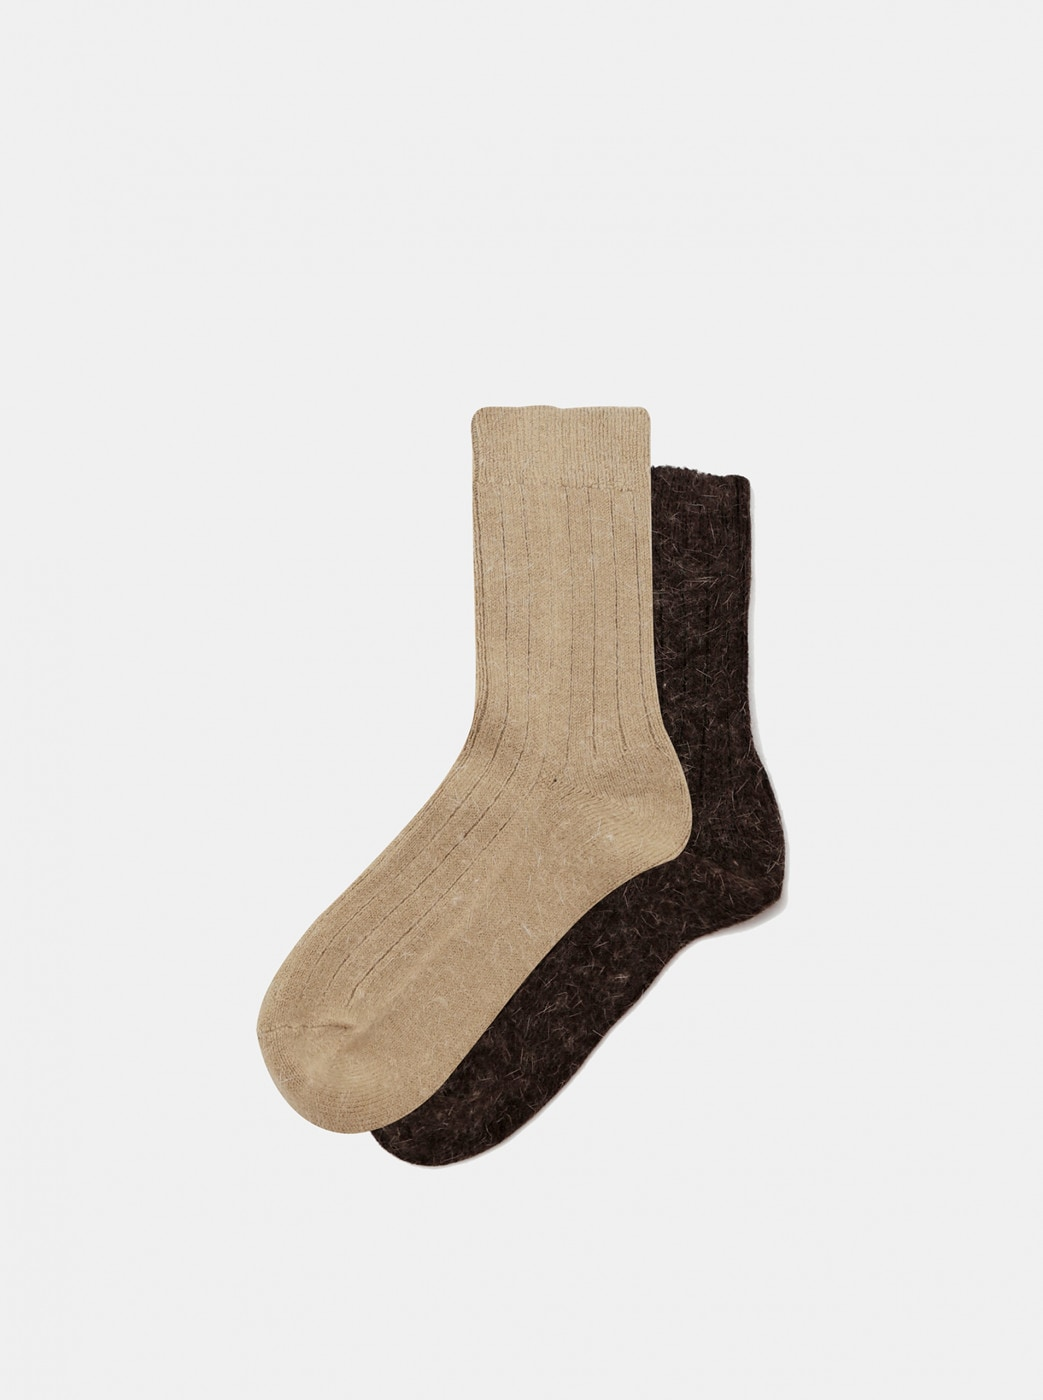 Set of two pairs of marie claire brown socks